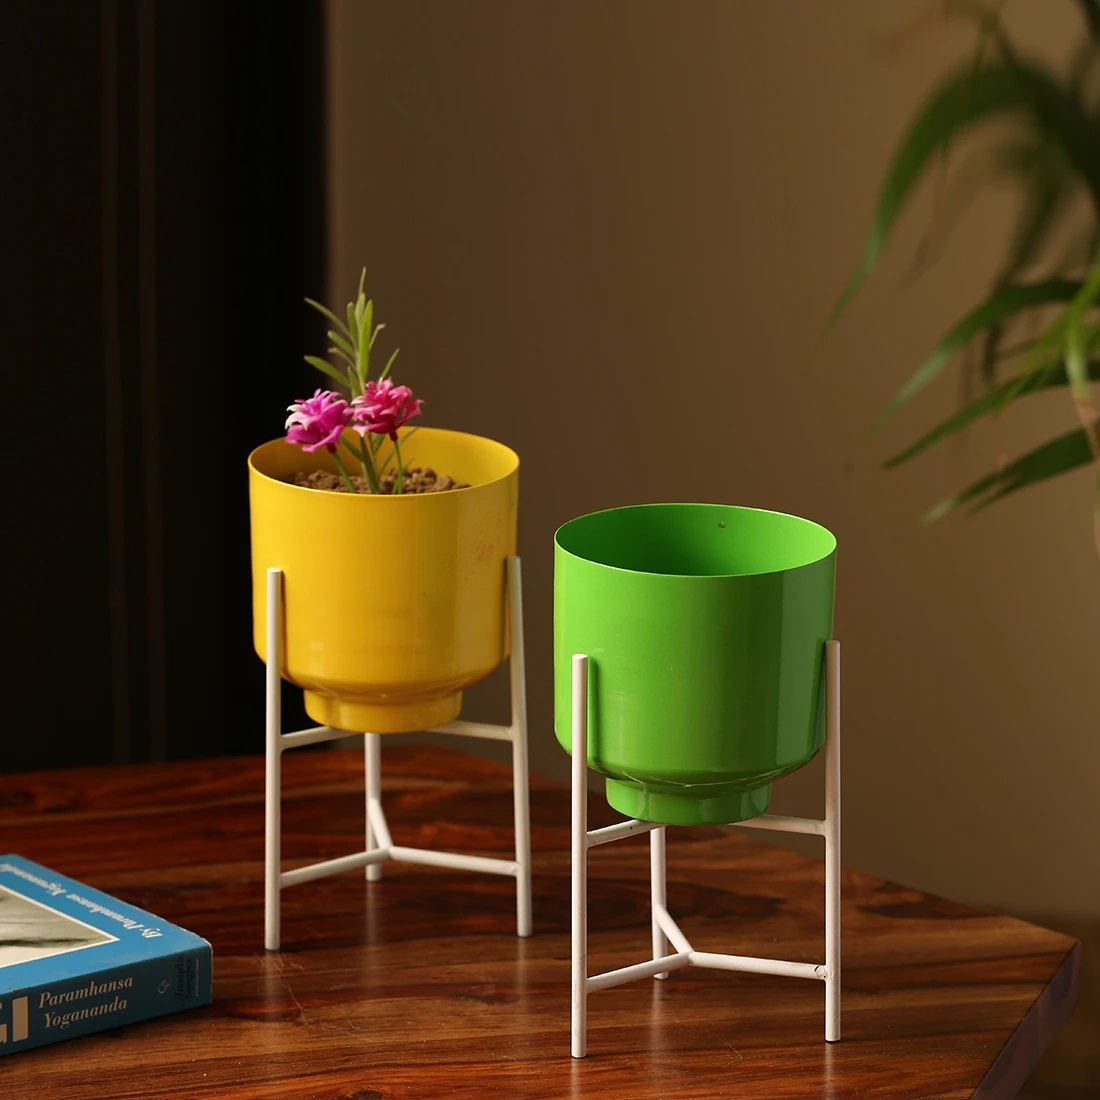 Moorni The Glossy Cylindrical Table Planter Pots With Triangular Stands In Iron (Set of 2)